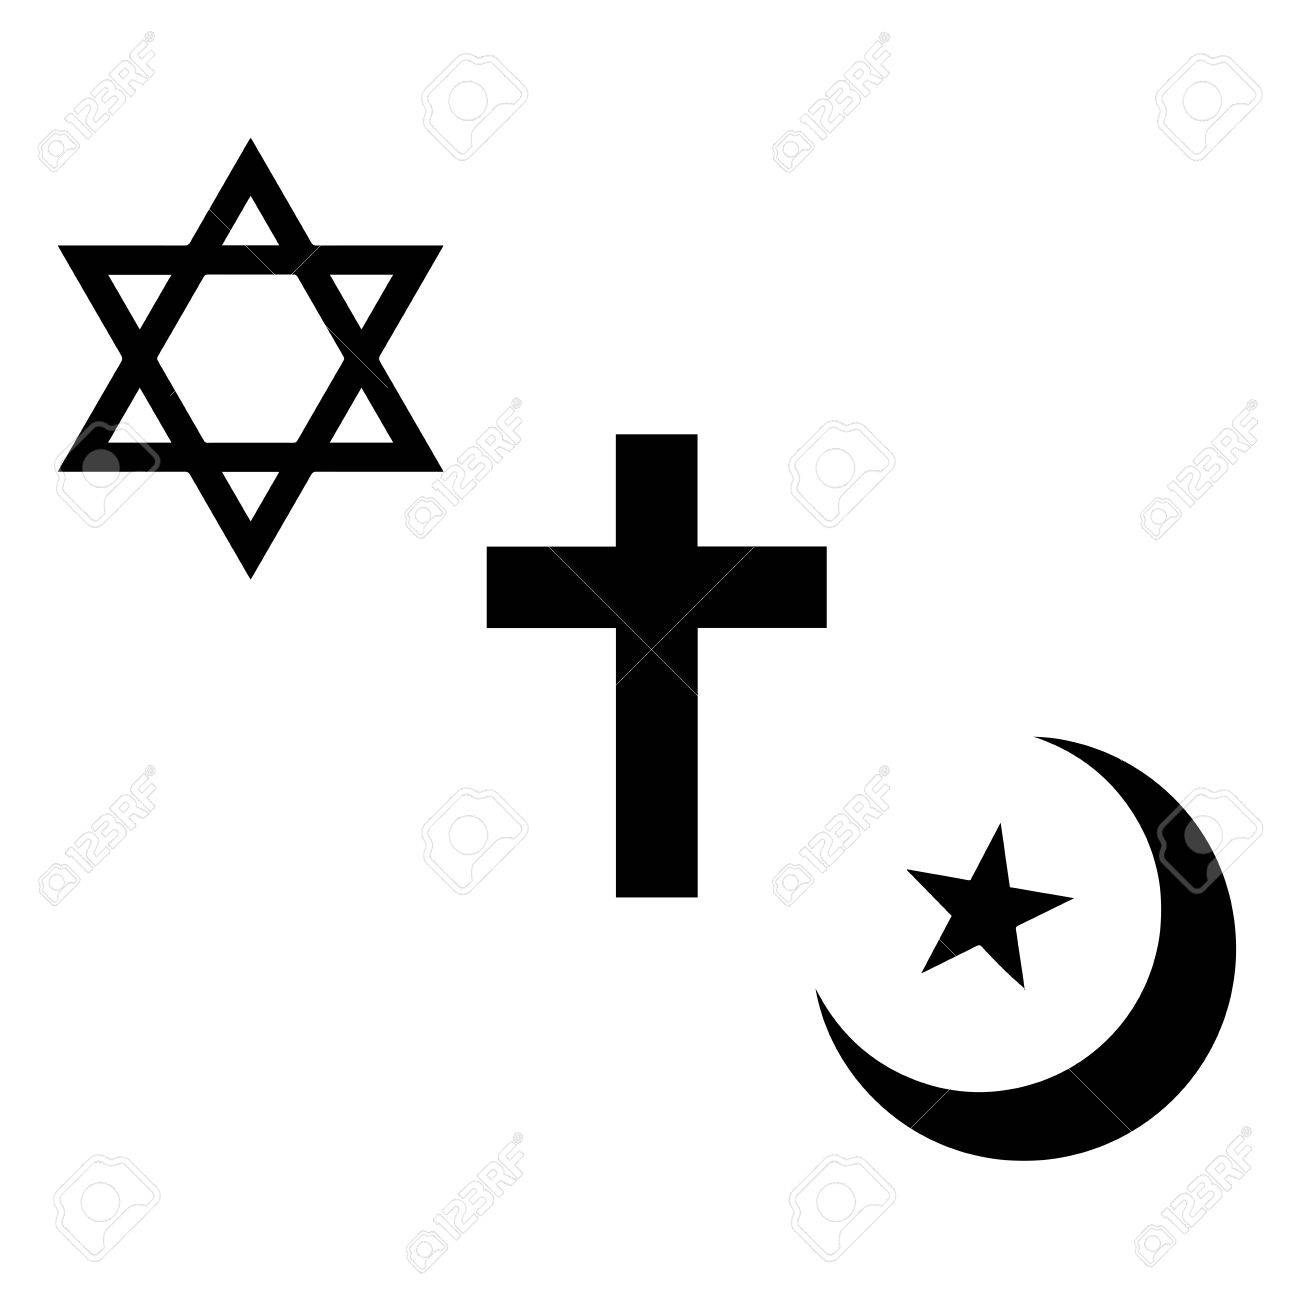 Religious signs christian jewish and muslim symbols vector christian jewish and muslim symbols vector format stock vector biocorpaavc Choice Image